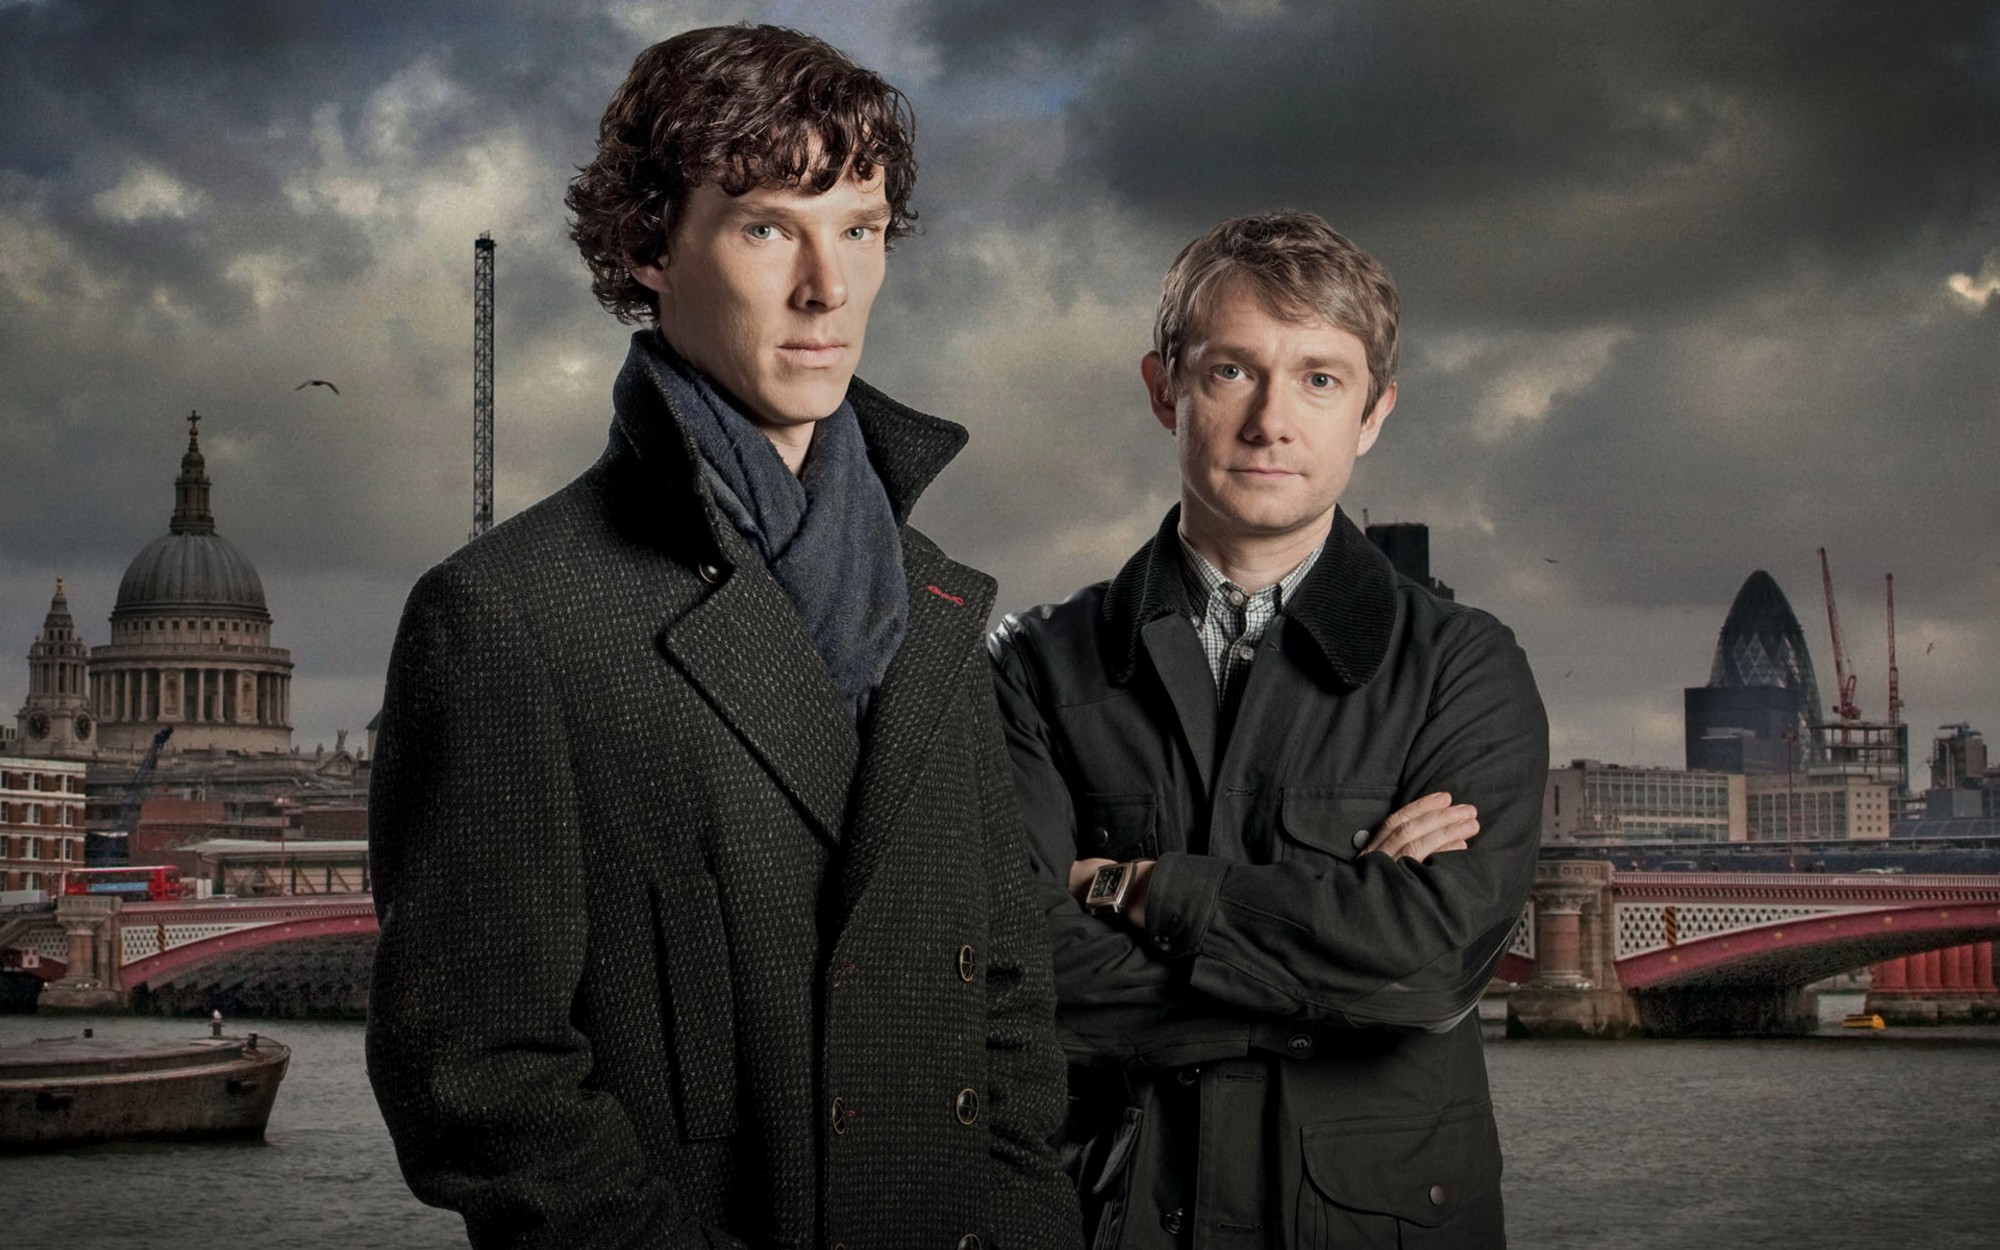 Sherlock Holmes: actors who most accurately embodied the image of a brilliant detective